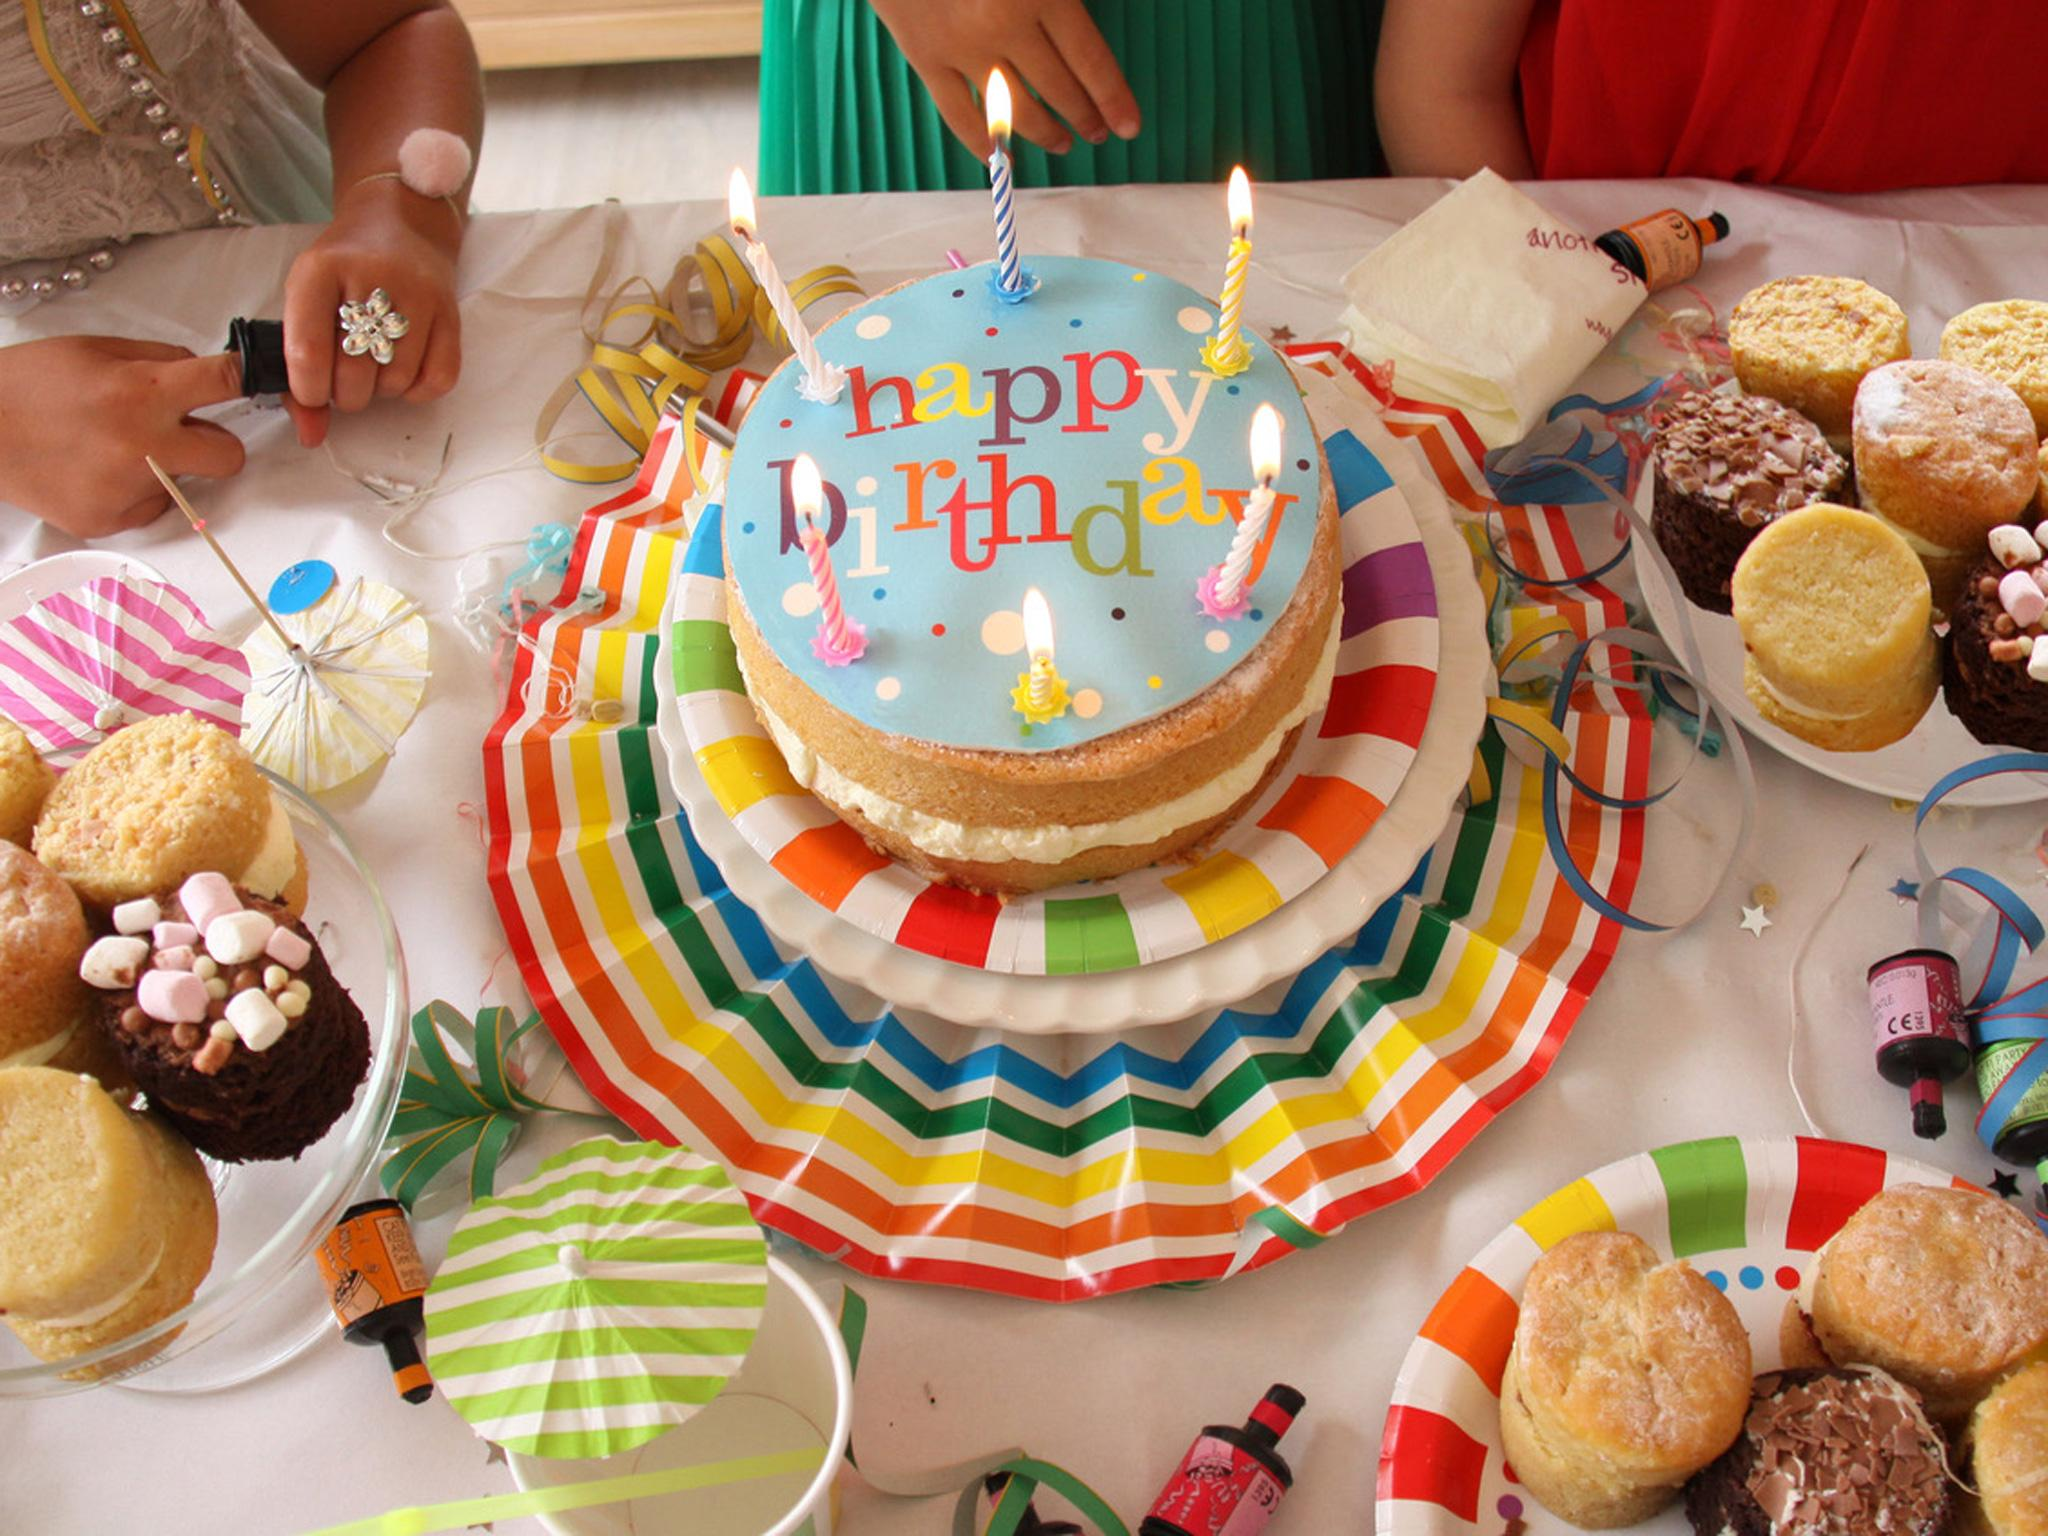 10 Best Gluten Free Birthday Cakes